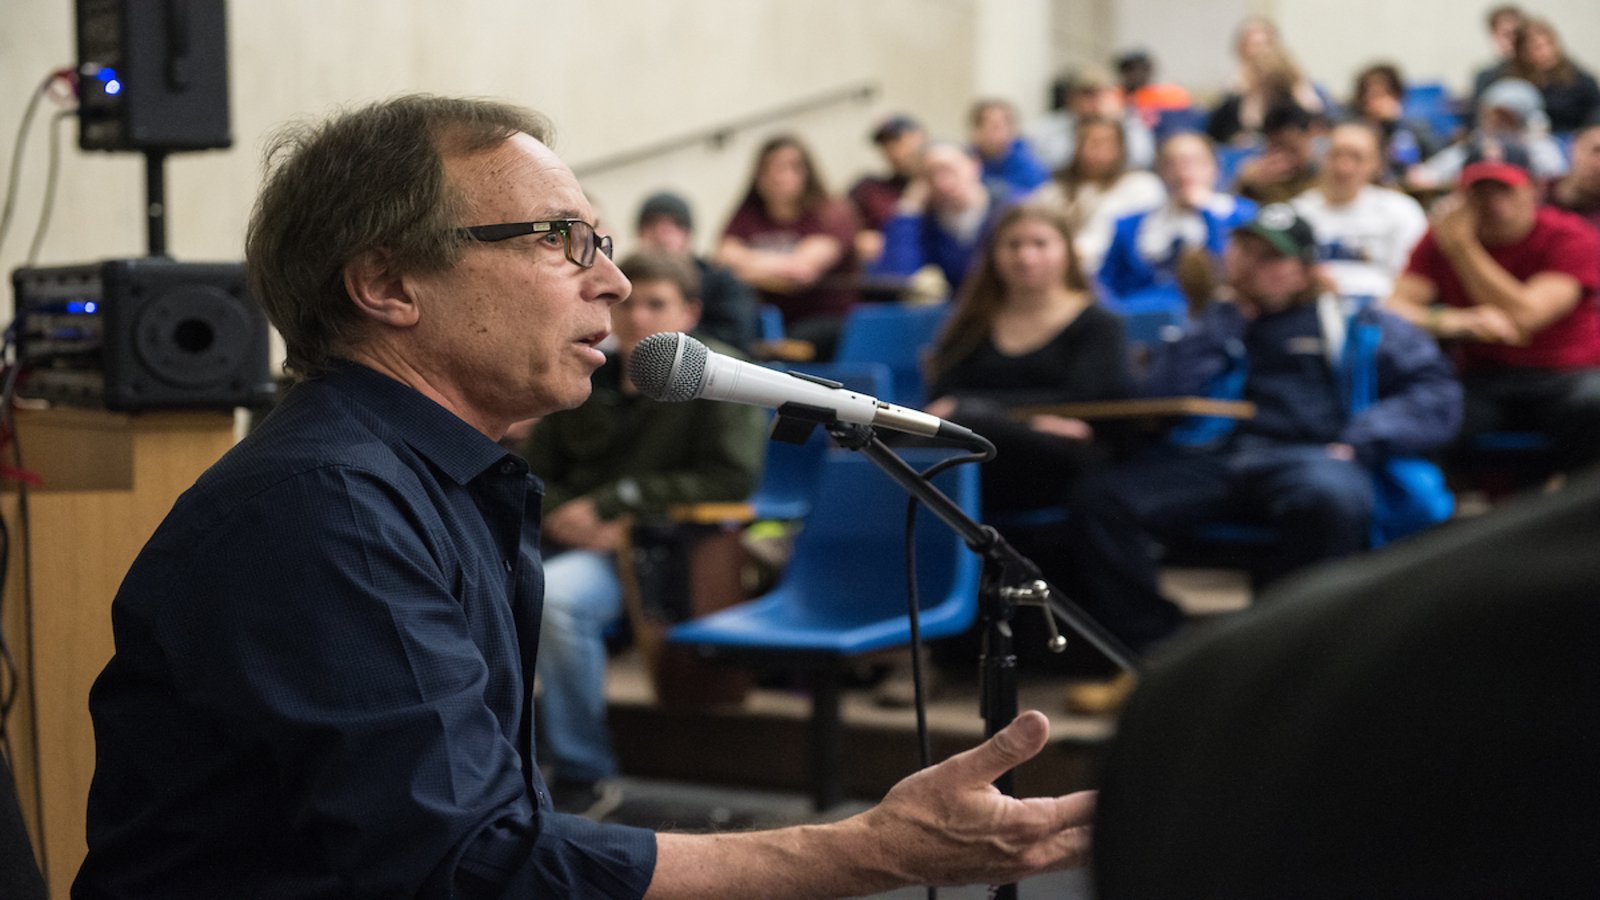 A guest speaker addresses music industry students during class